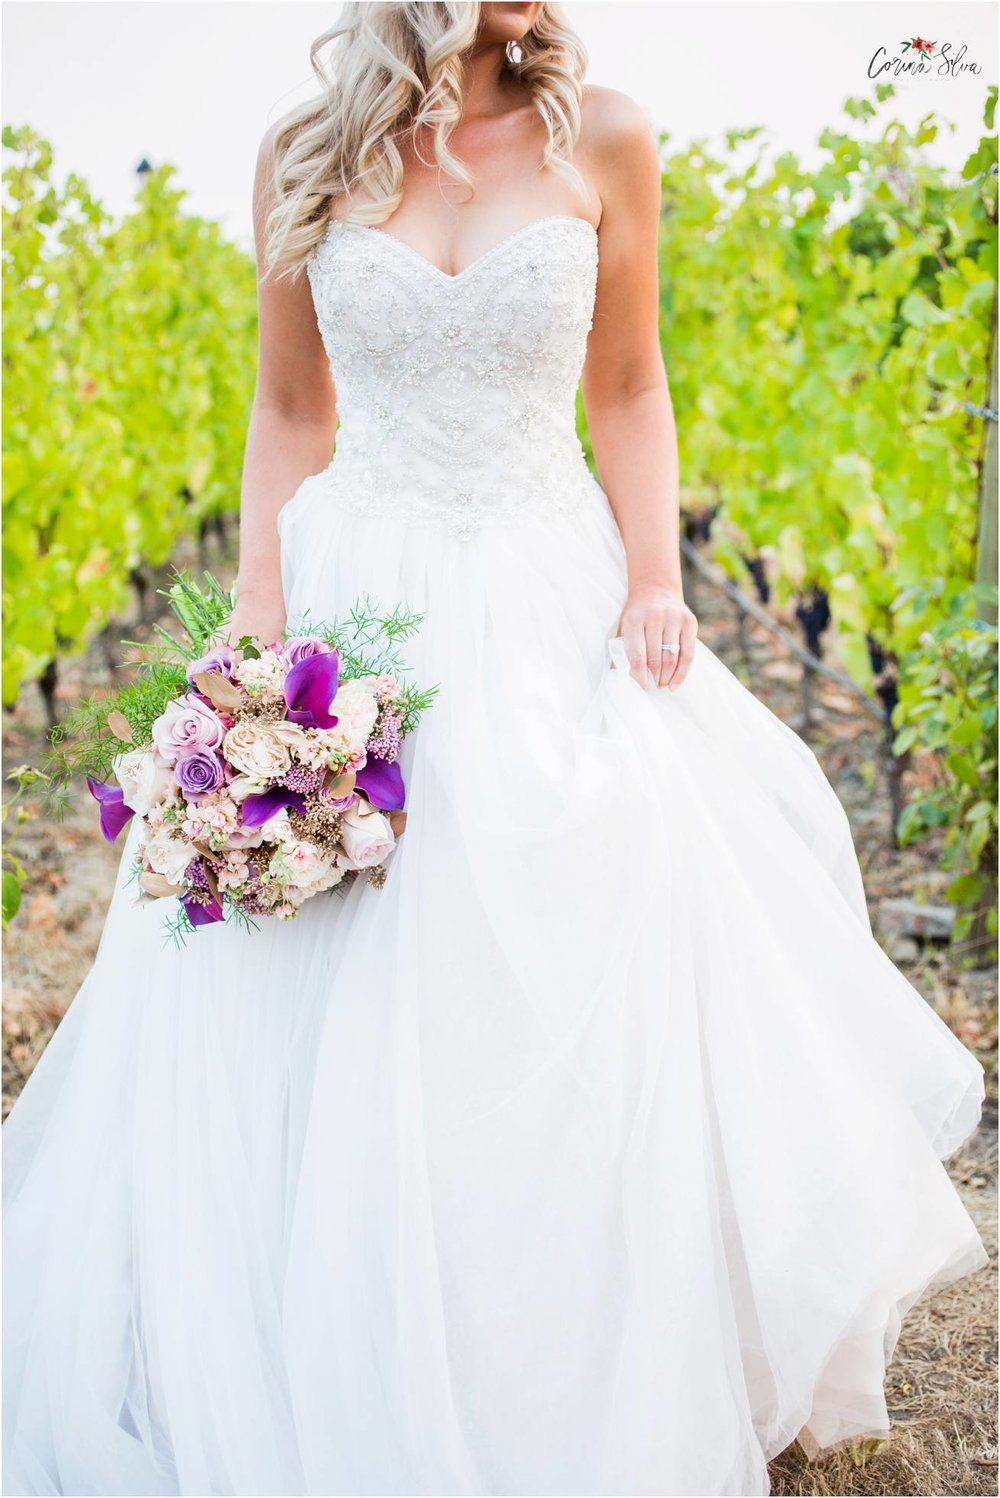 Zenith-Wineyard-Wedding-Styled-Photo-Corina-Silva-Studios_0048.jpg